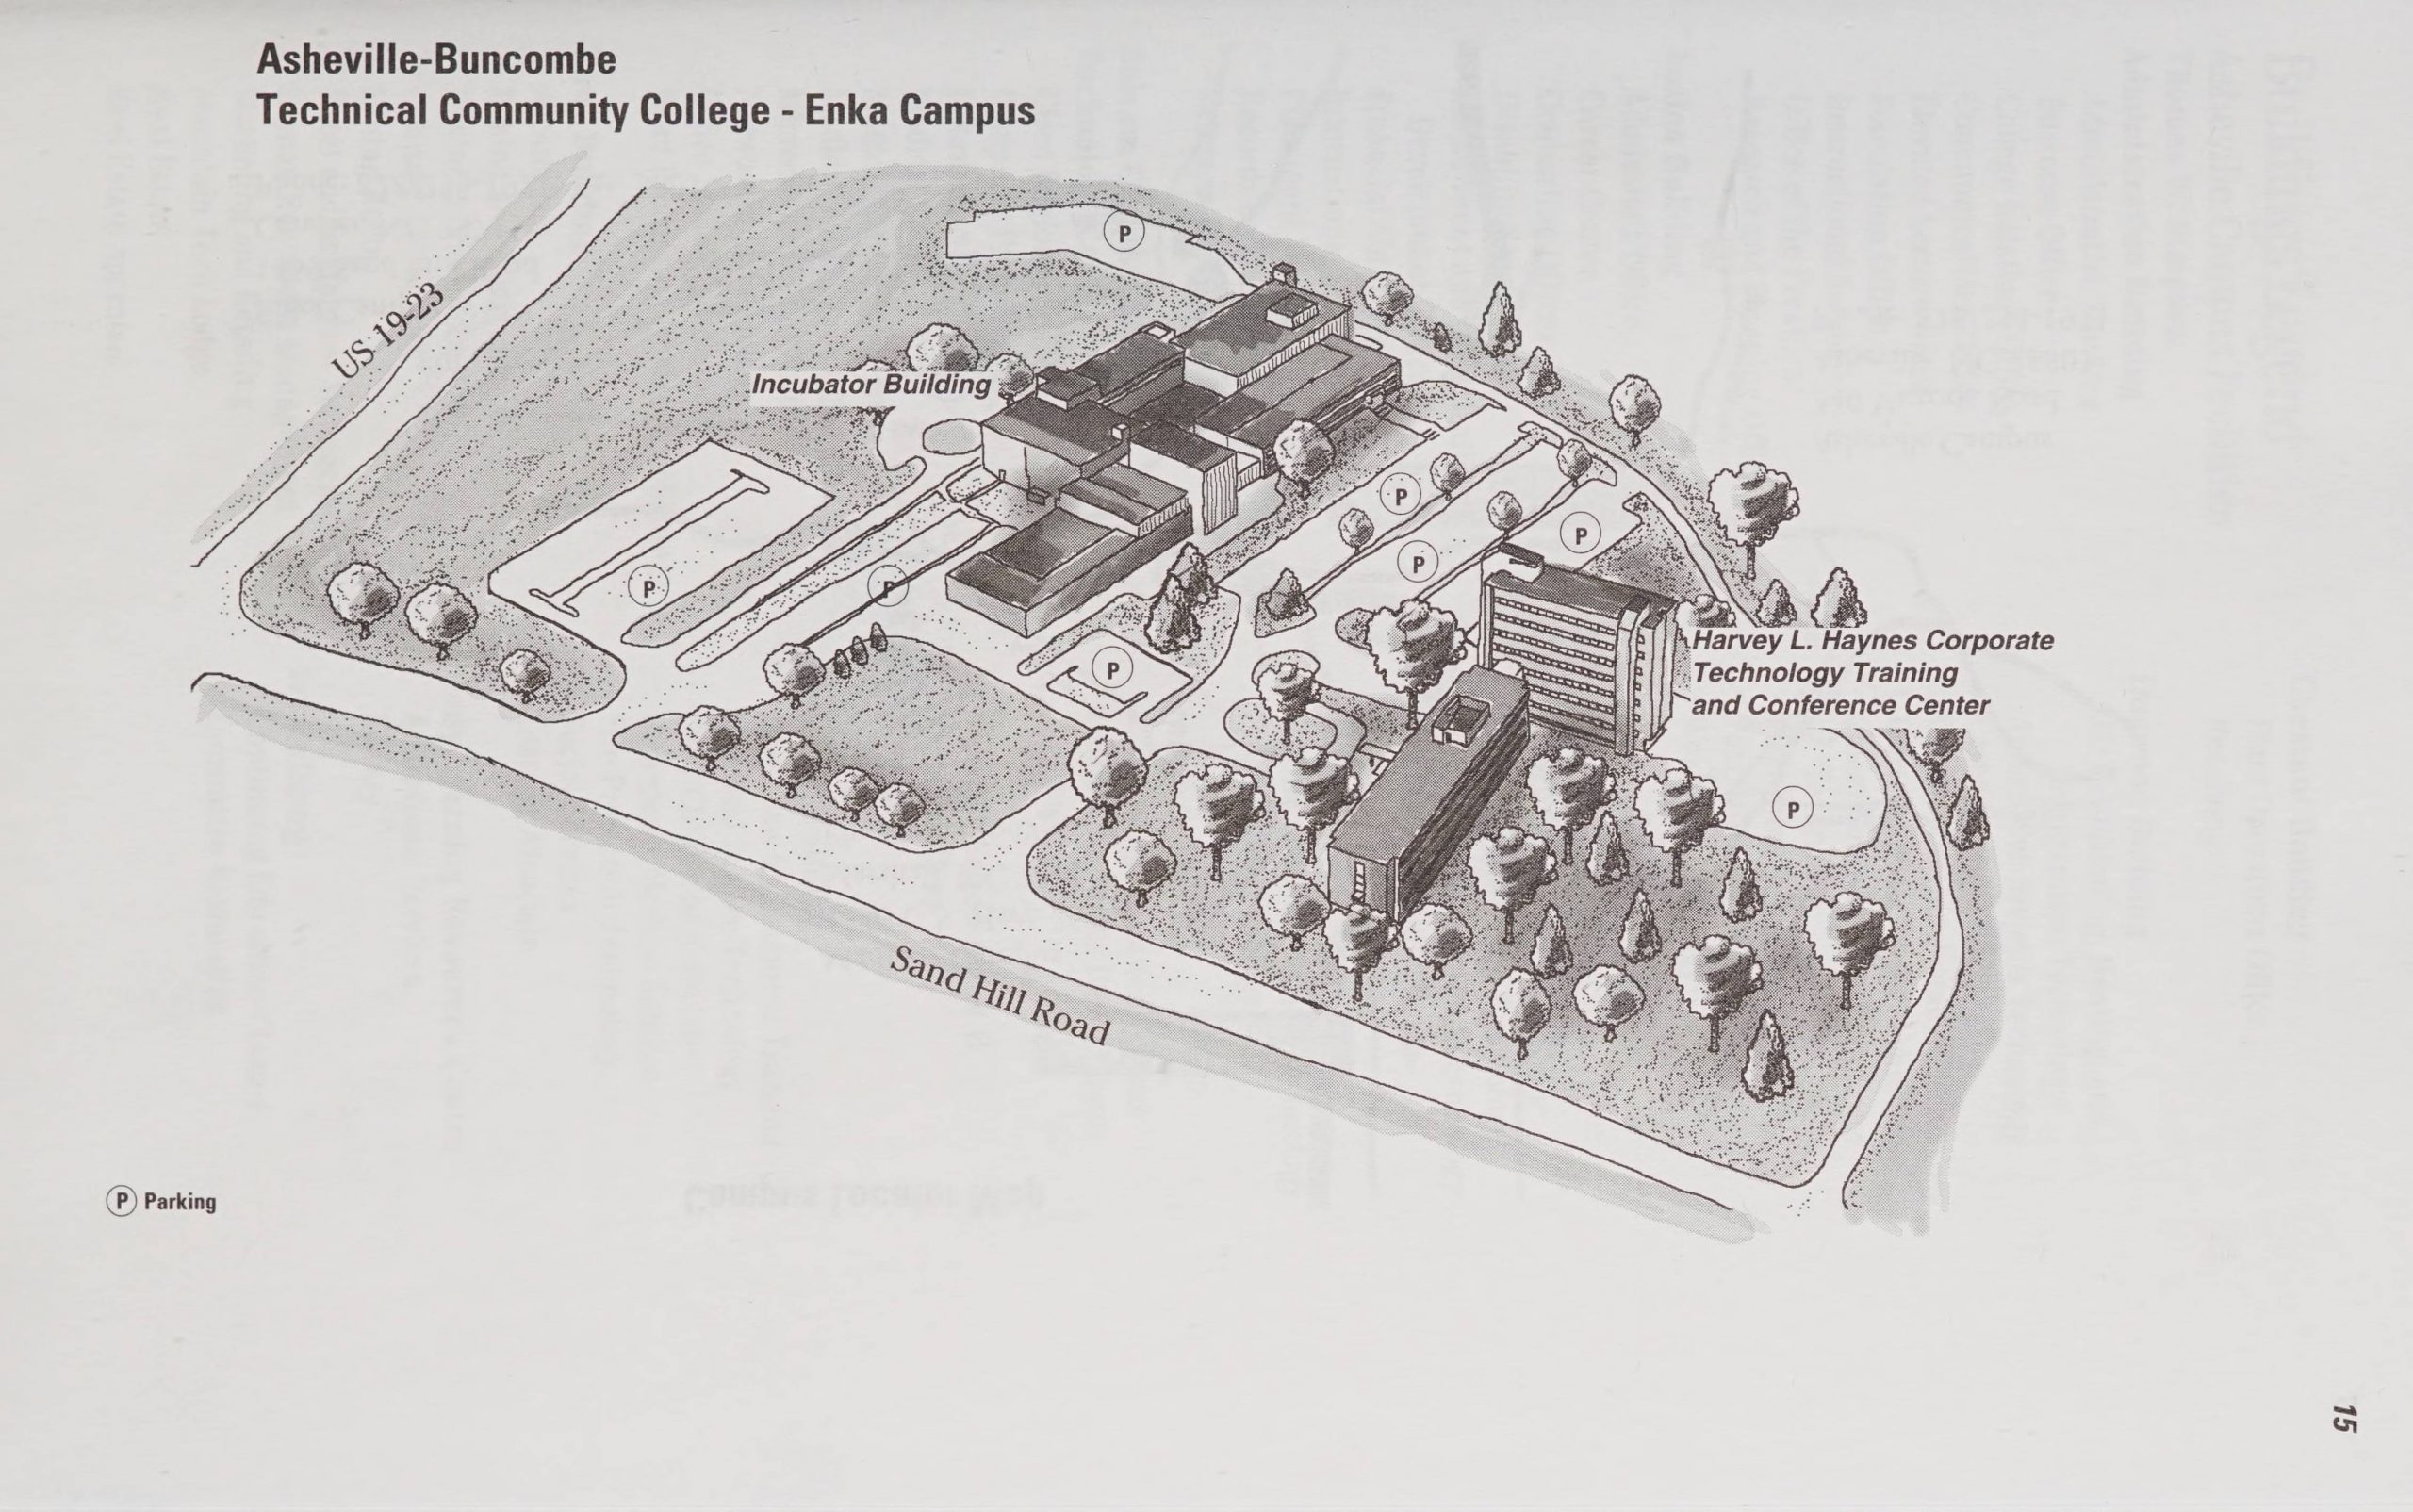 Image is a sketch of A-B Tech's Enka campus as of 2003.